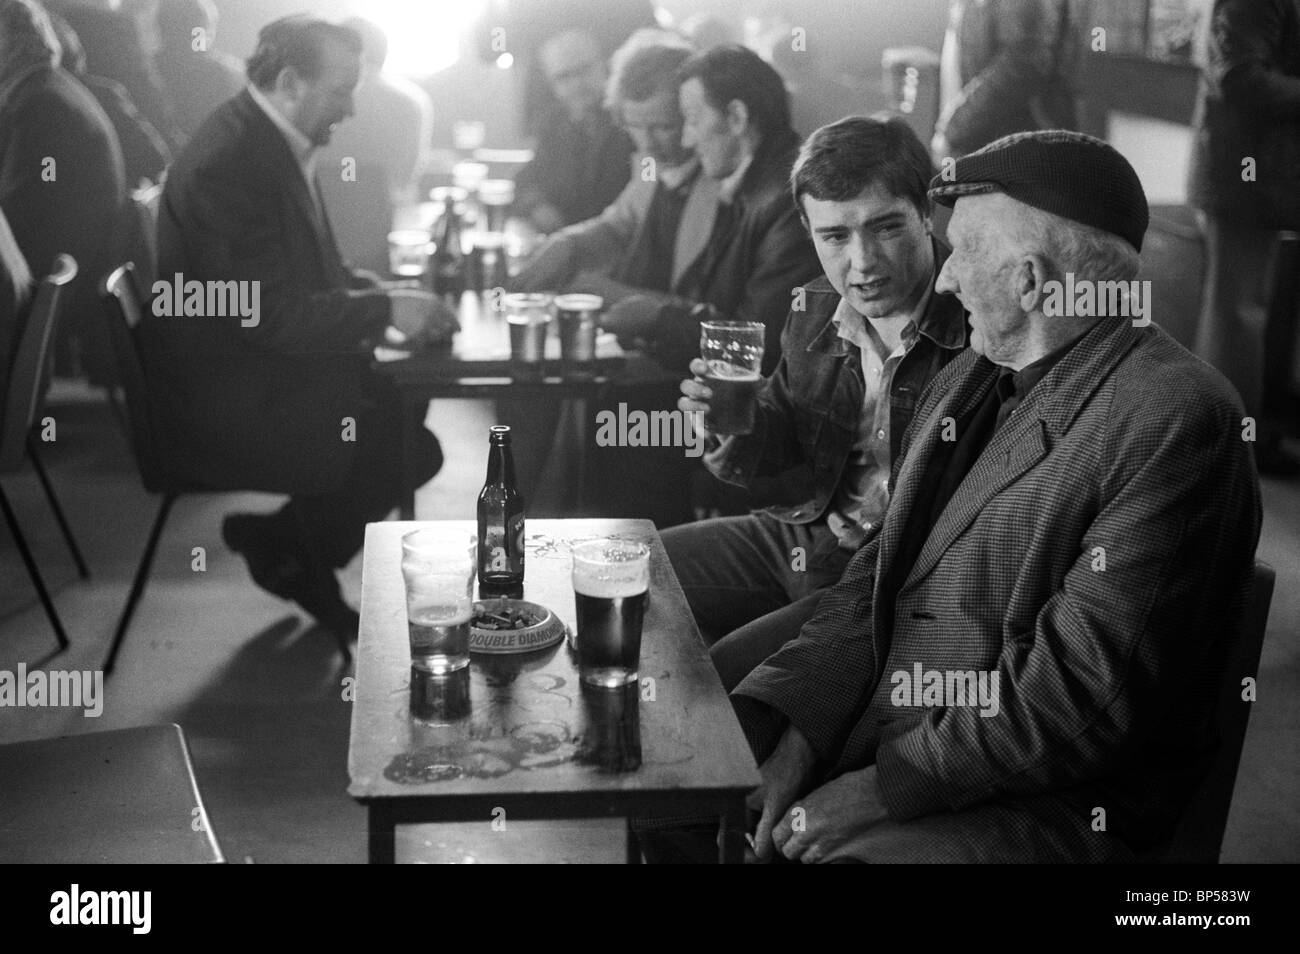 Men having a lunch time drink Glasgow Pub Scotland 1979. HOMER SYKES - Stock Image